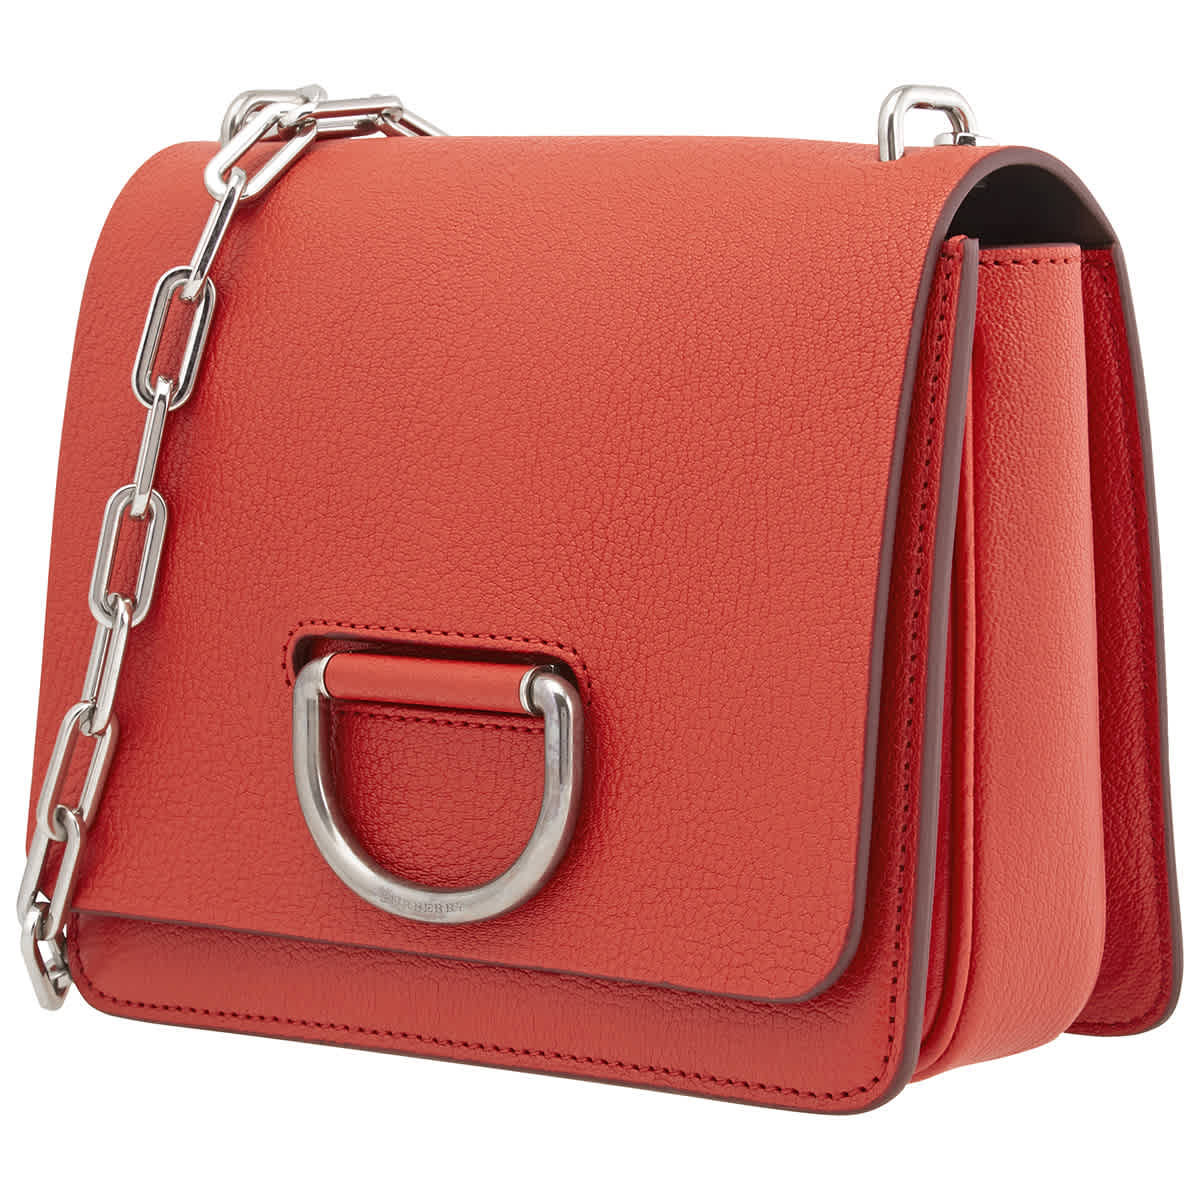 Burberry Small Leather D-ring Crossbody Bag